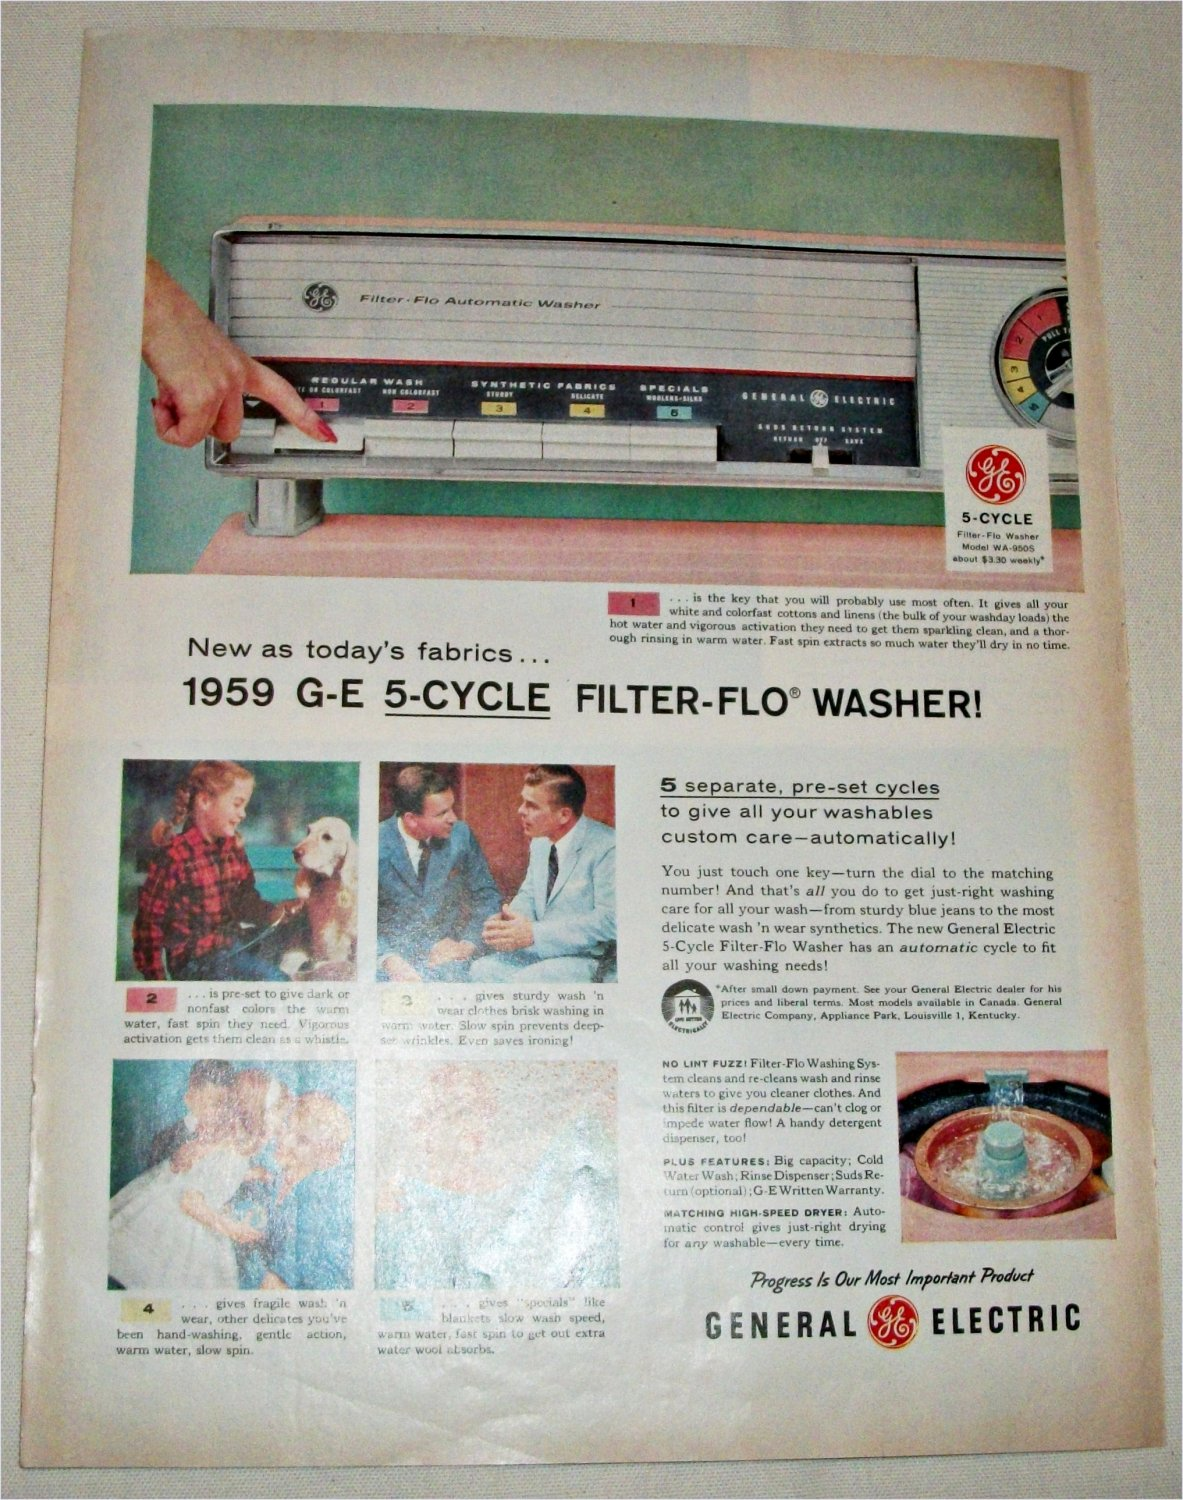 1959 GE 5 Cycle Filter Flo Washer ad #2